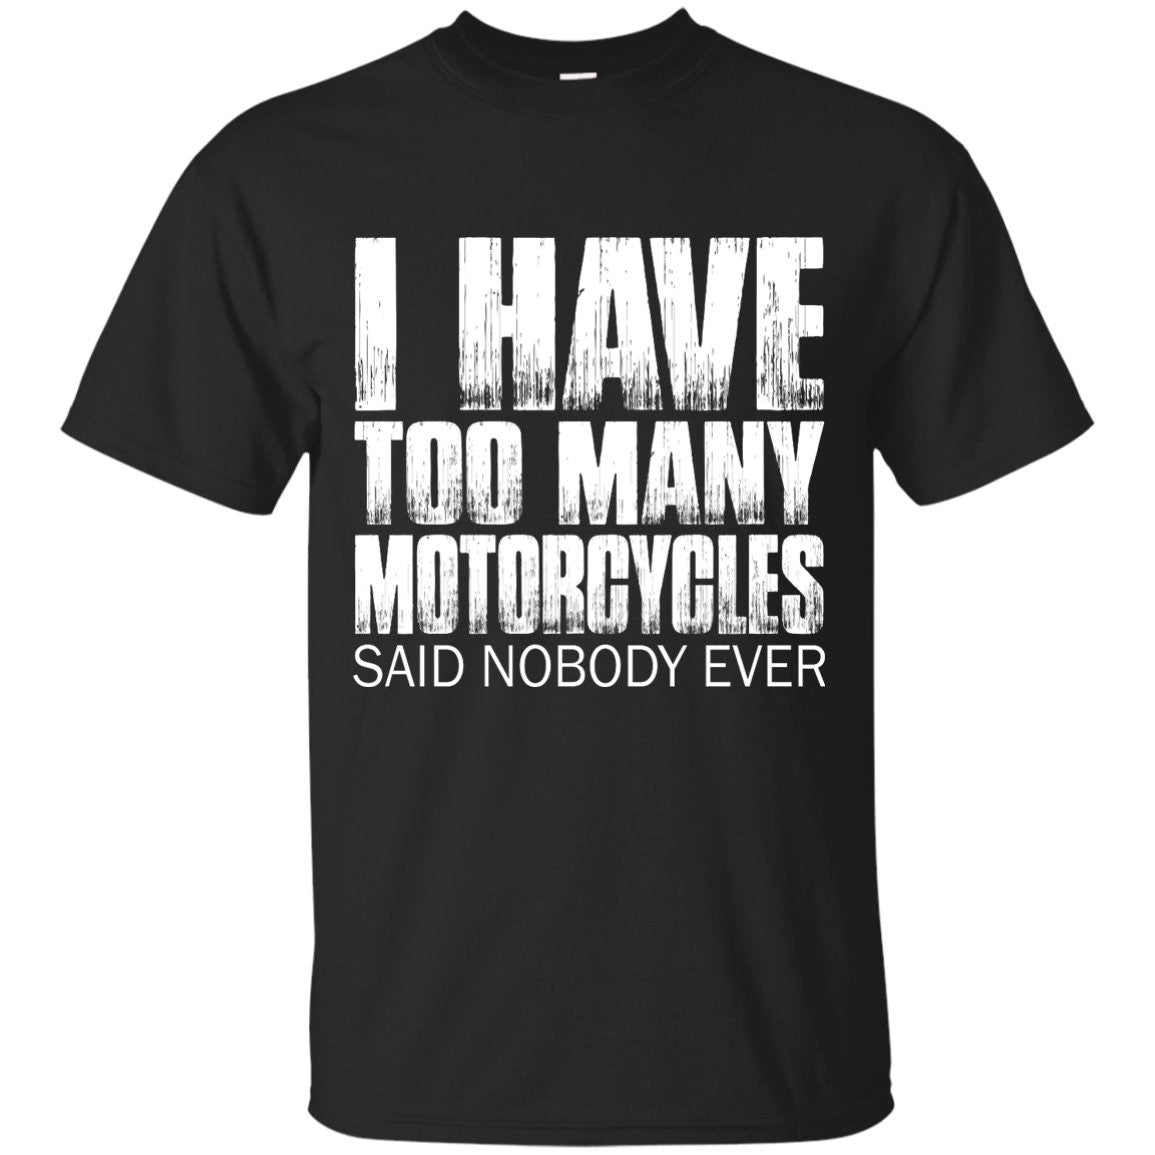 567967245a4 I Have Too Many Motorcycles T-Shirt Black Small Medium Large X-Large XX